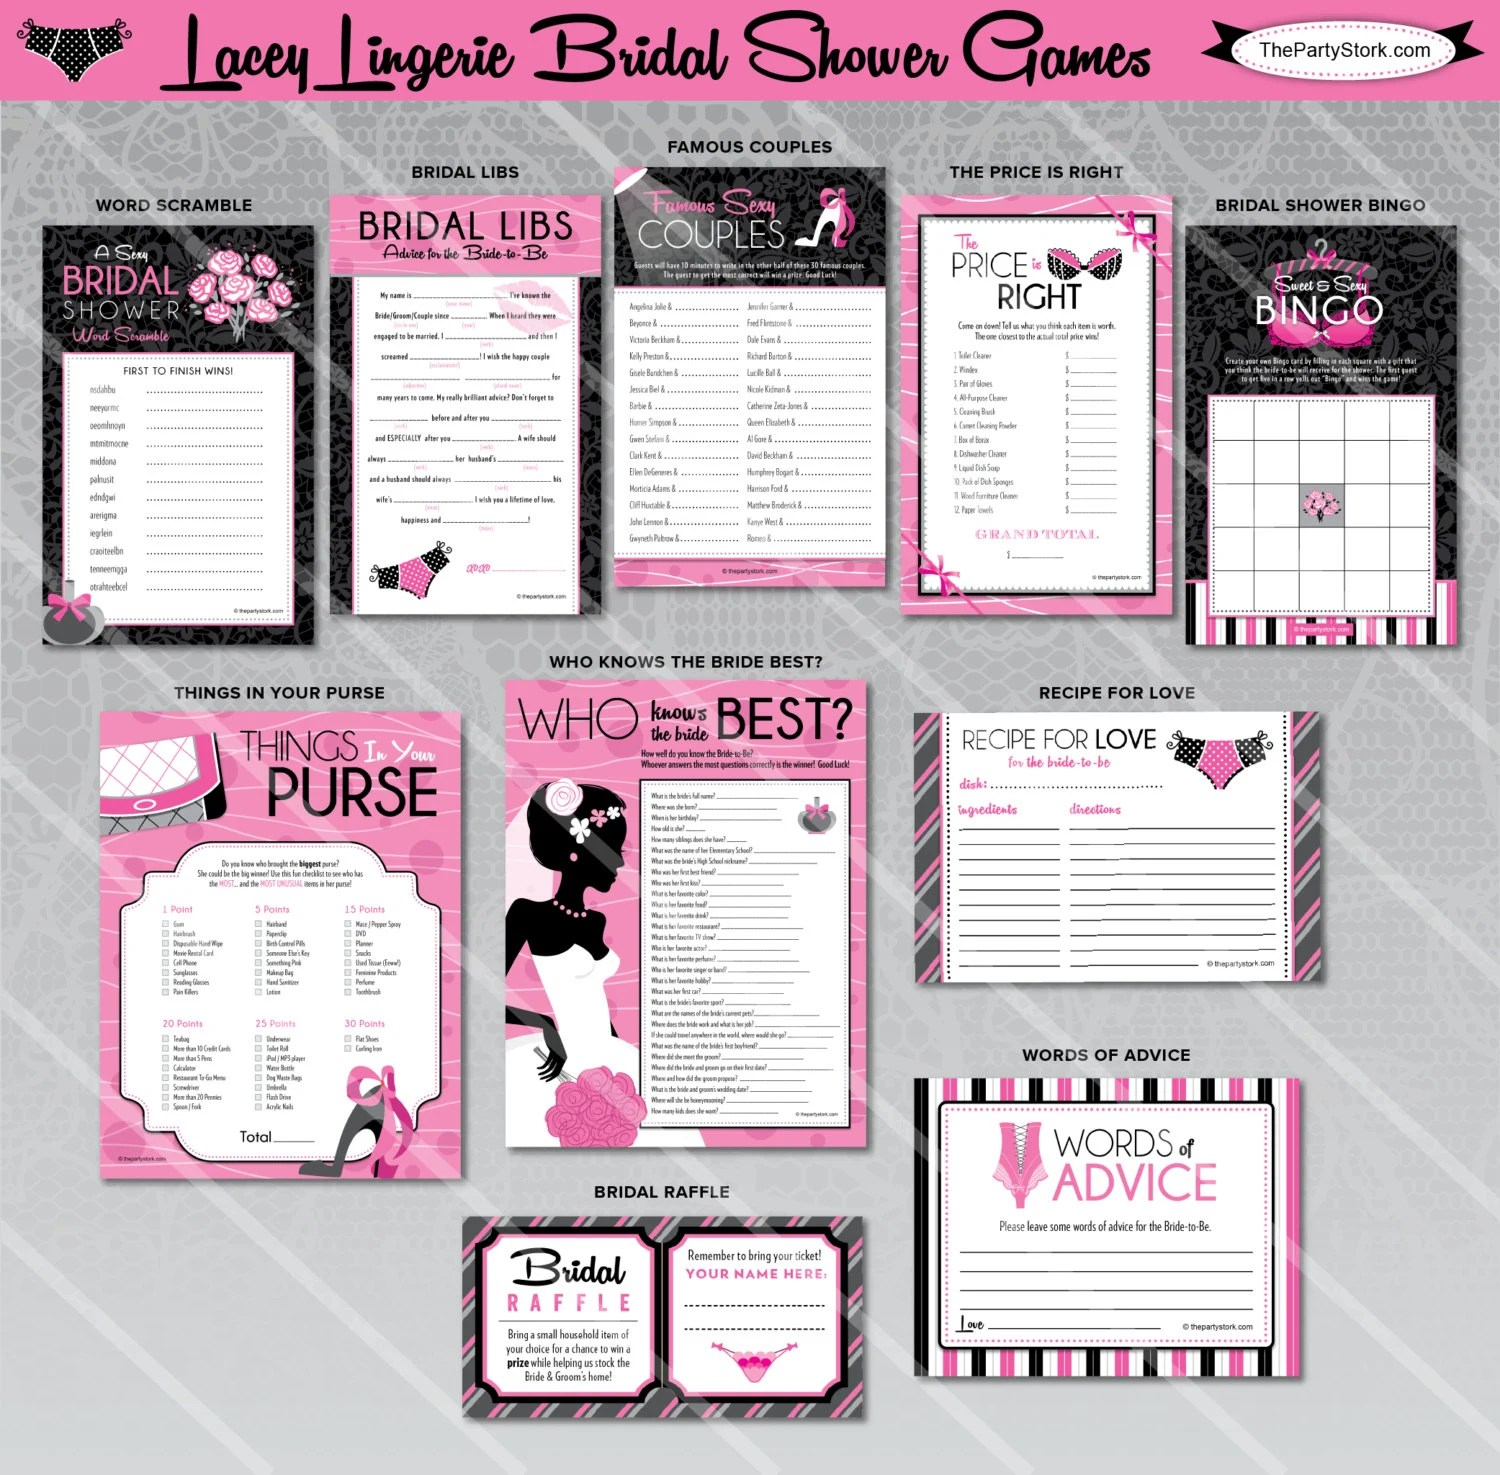 Lingerie Bridal Shower Games Printable Wedding by ThePartyStork